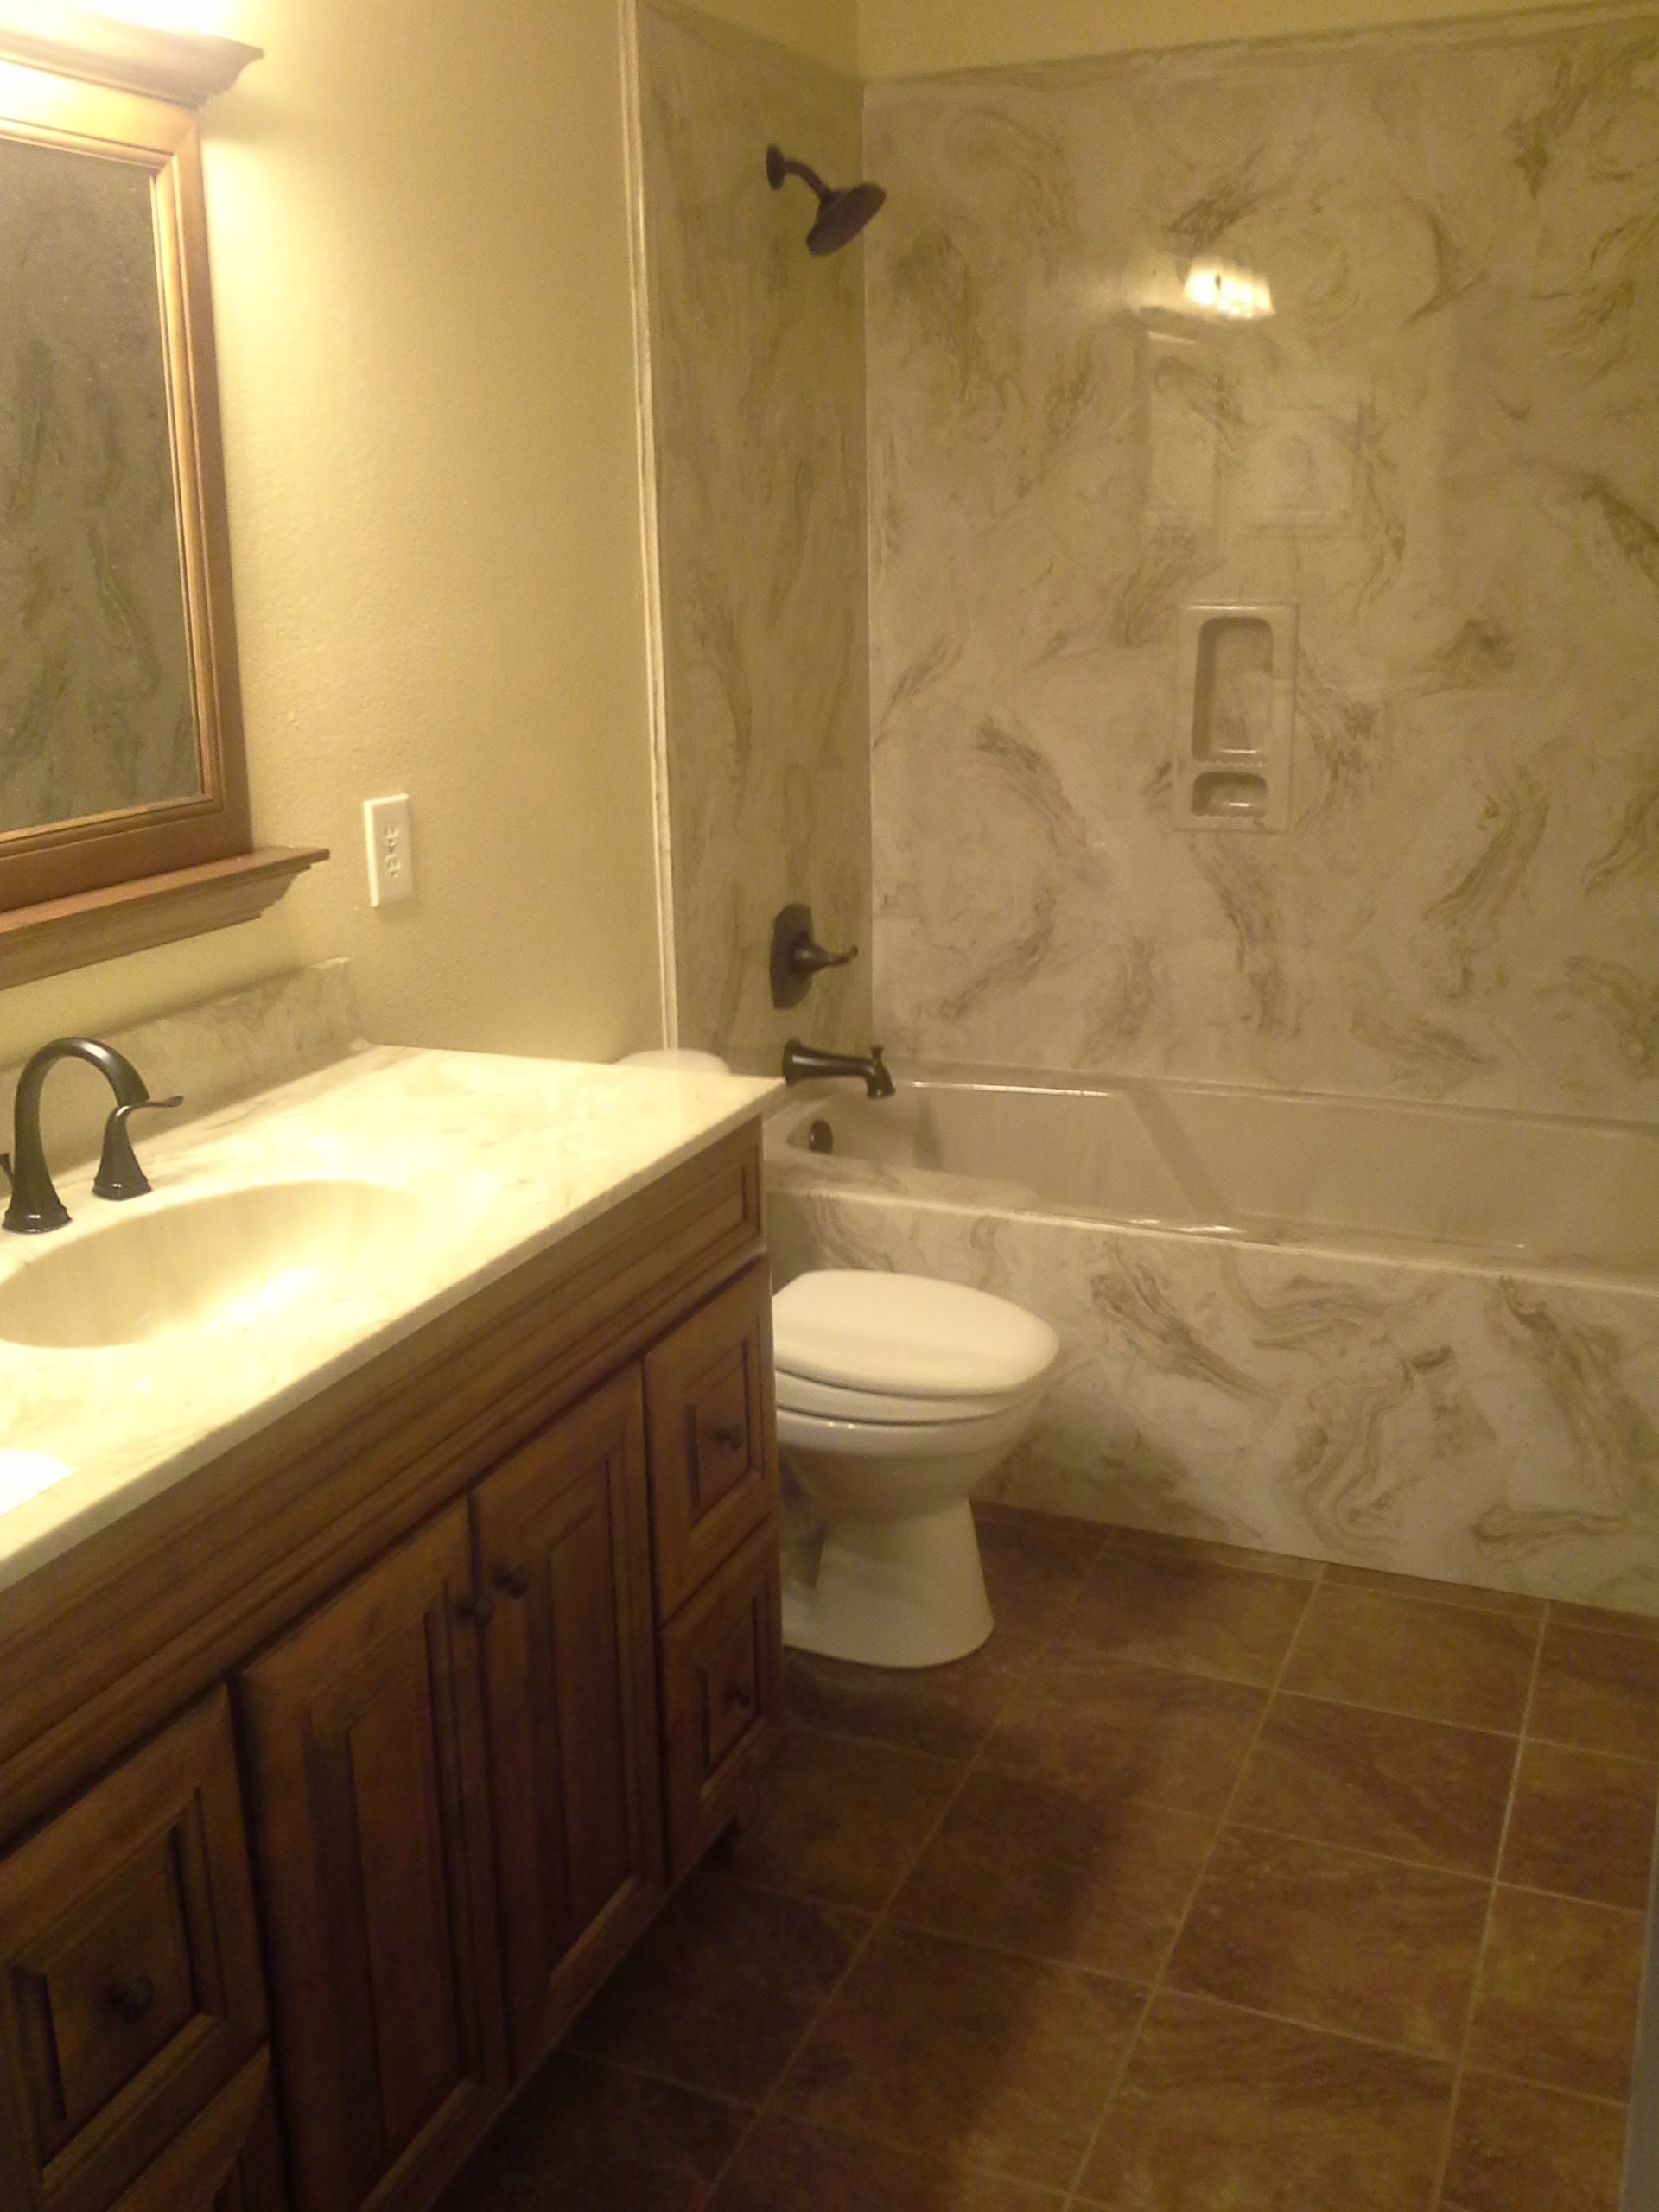 Gallery cantonment pensacola fl harlow plumbing for Plumbers bathroom renovations